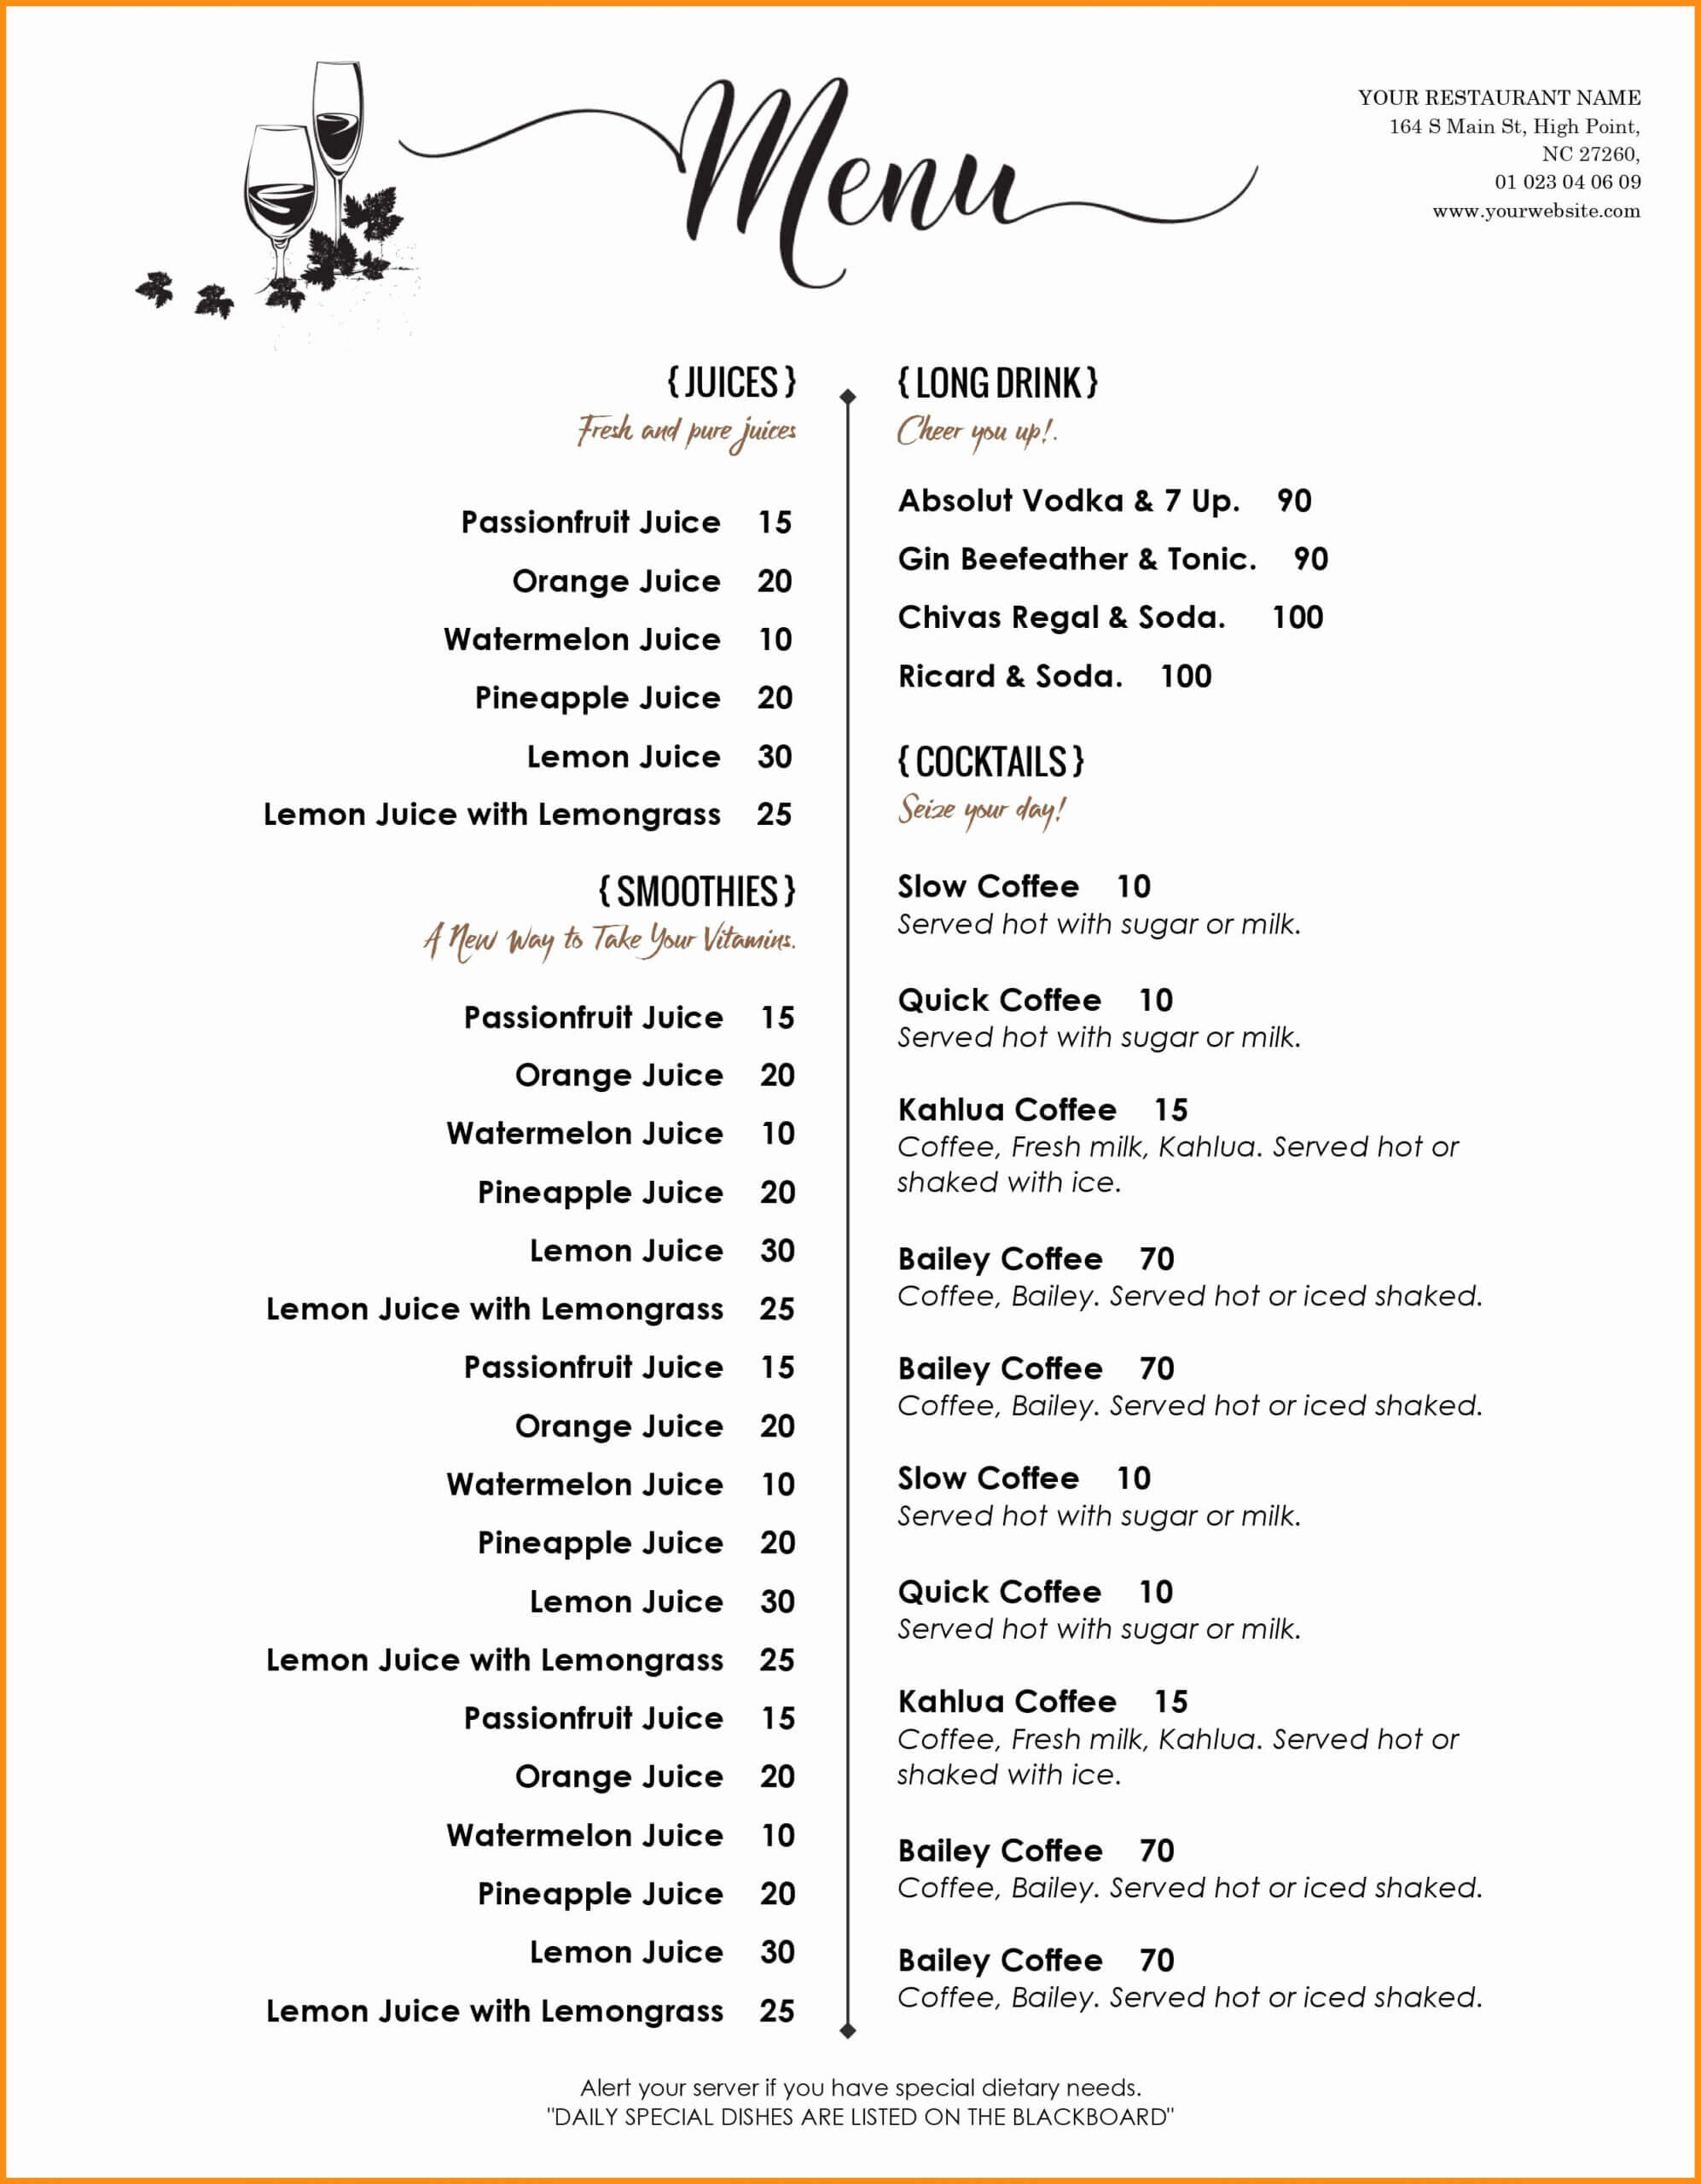 004 Menu Template Free Word Imposing Ideas Restaurant Within Free Cafe Menu Templates For Word